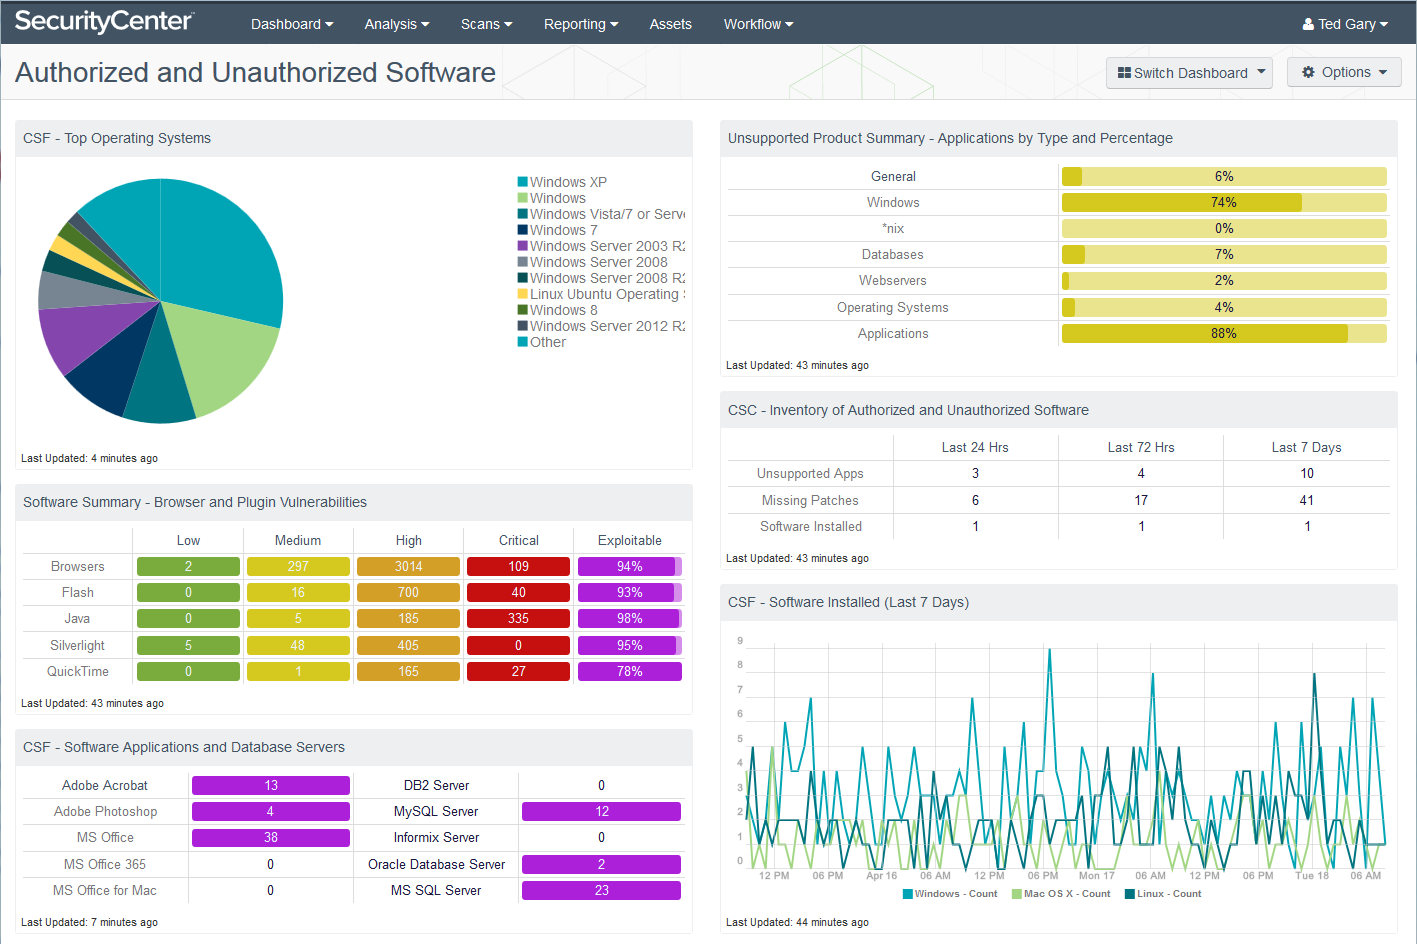 Authorized and Unauthorized Software Dashboard